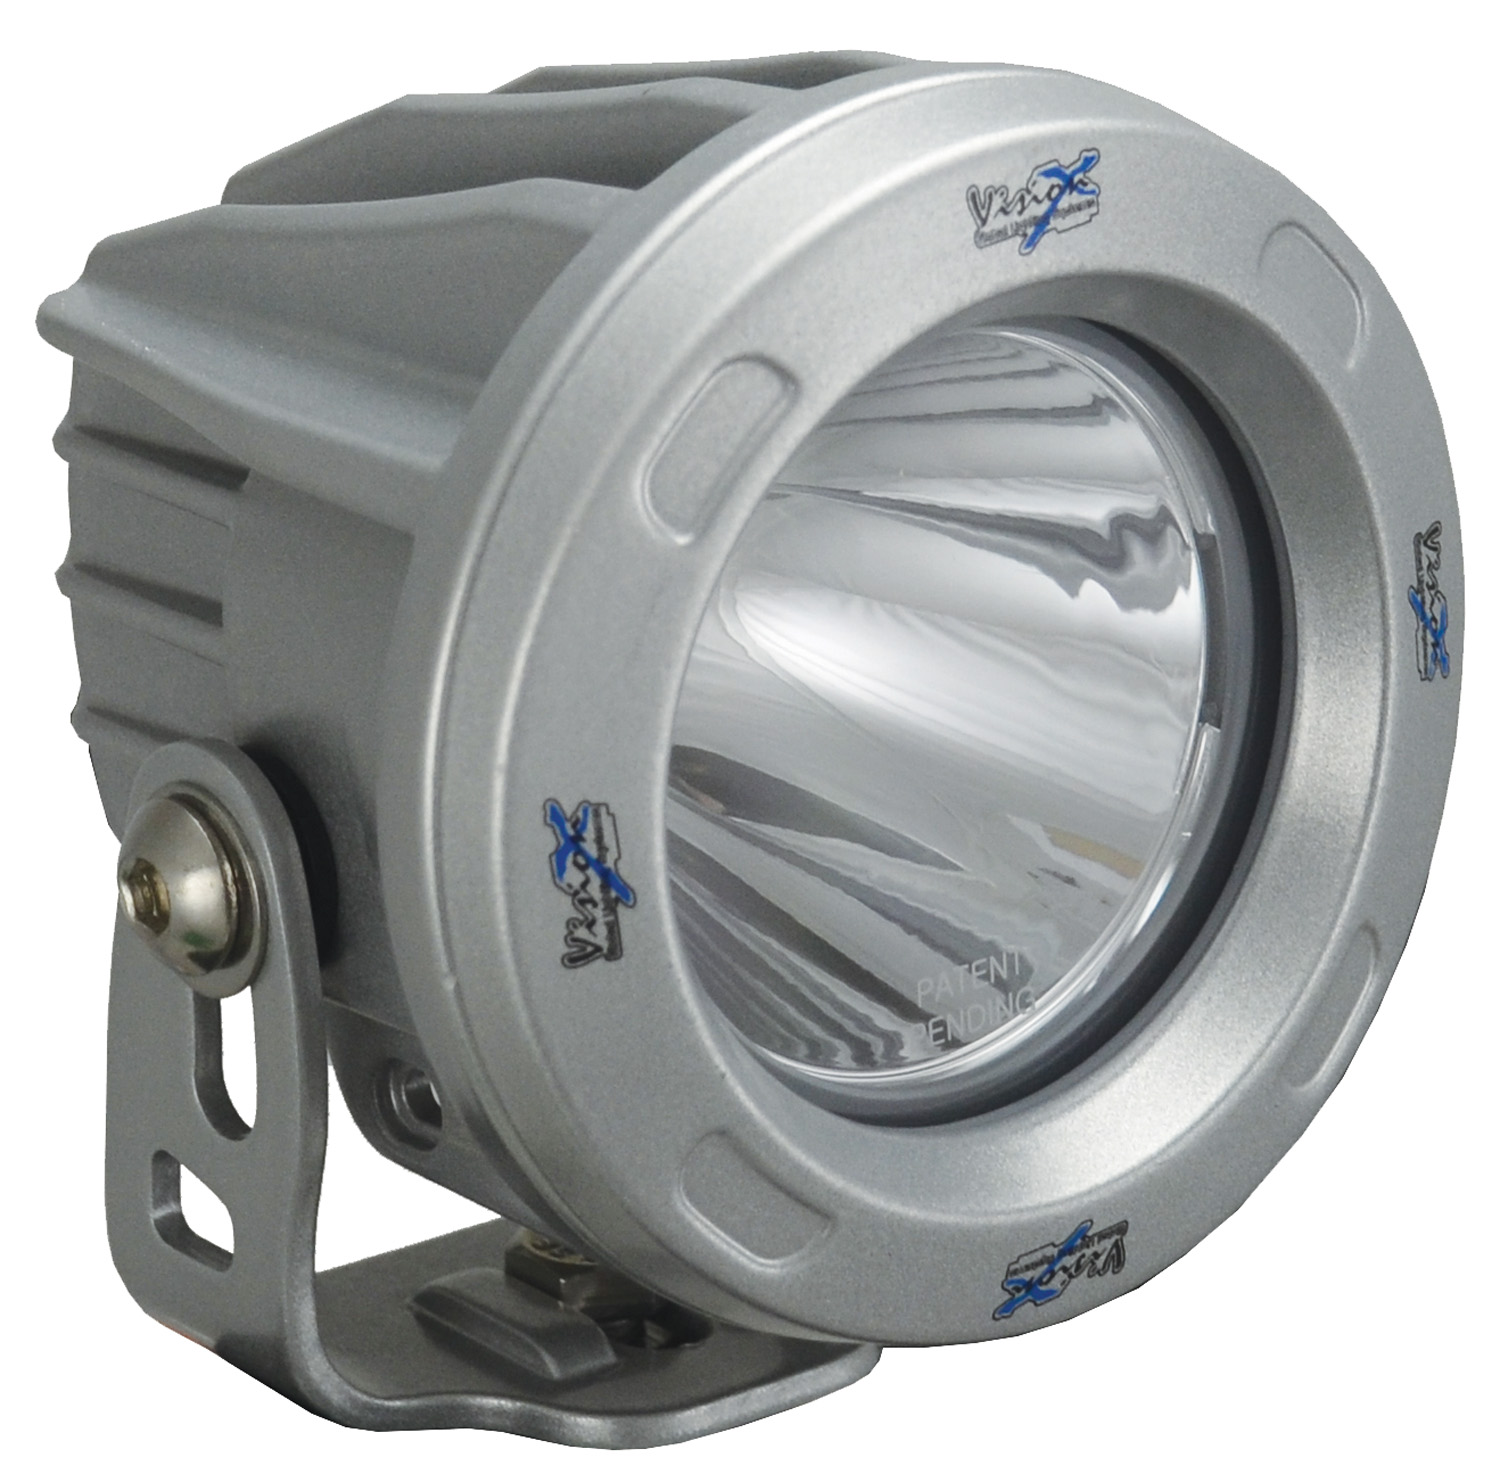 OPTIMUS ROUND SILVER 1 10W LED 10? NARROW